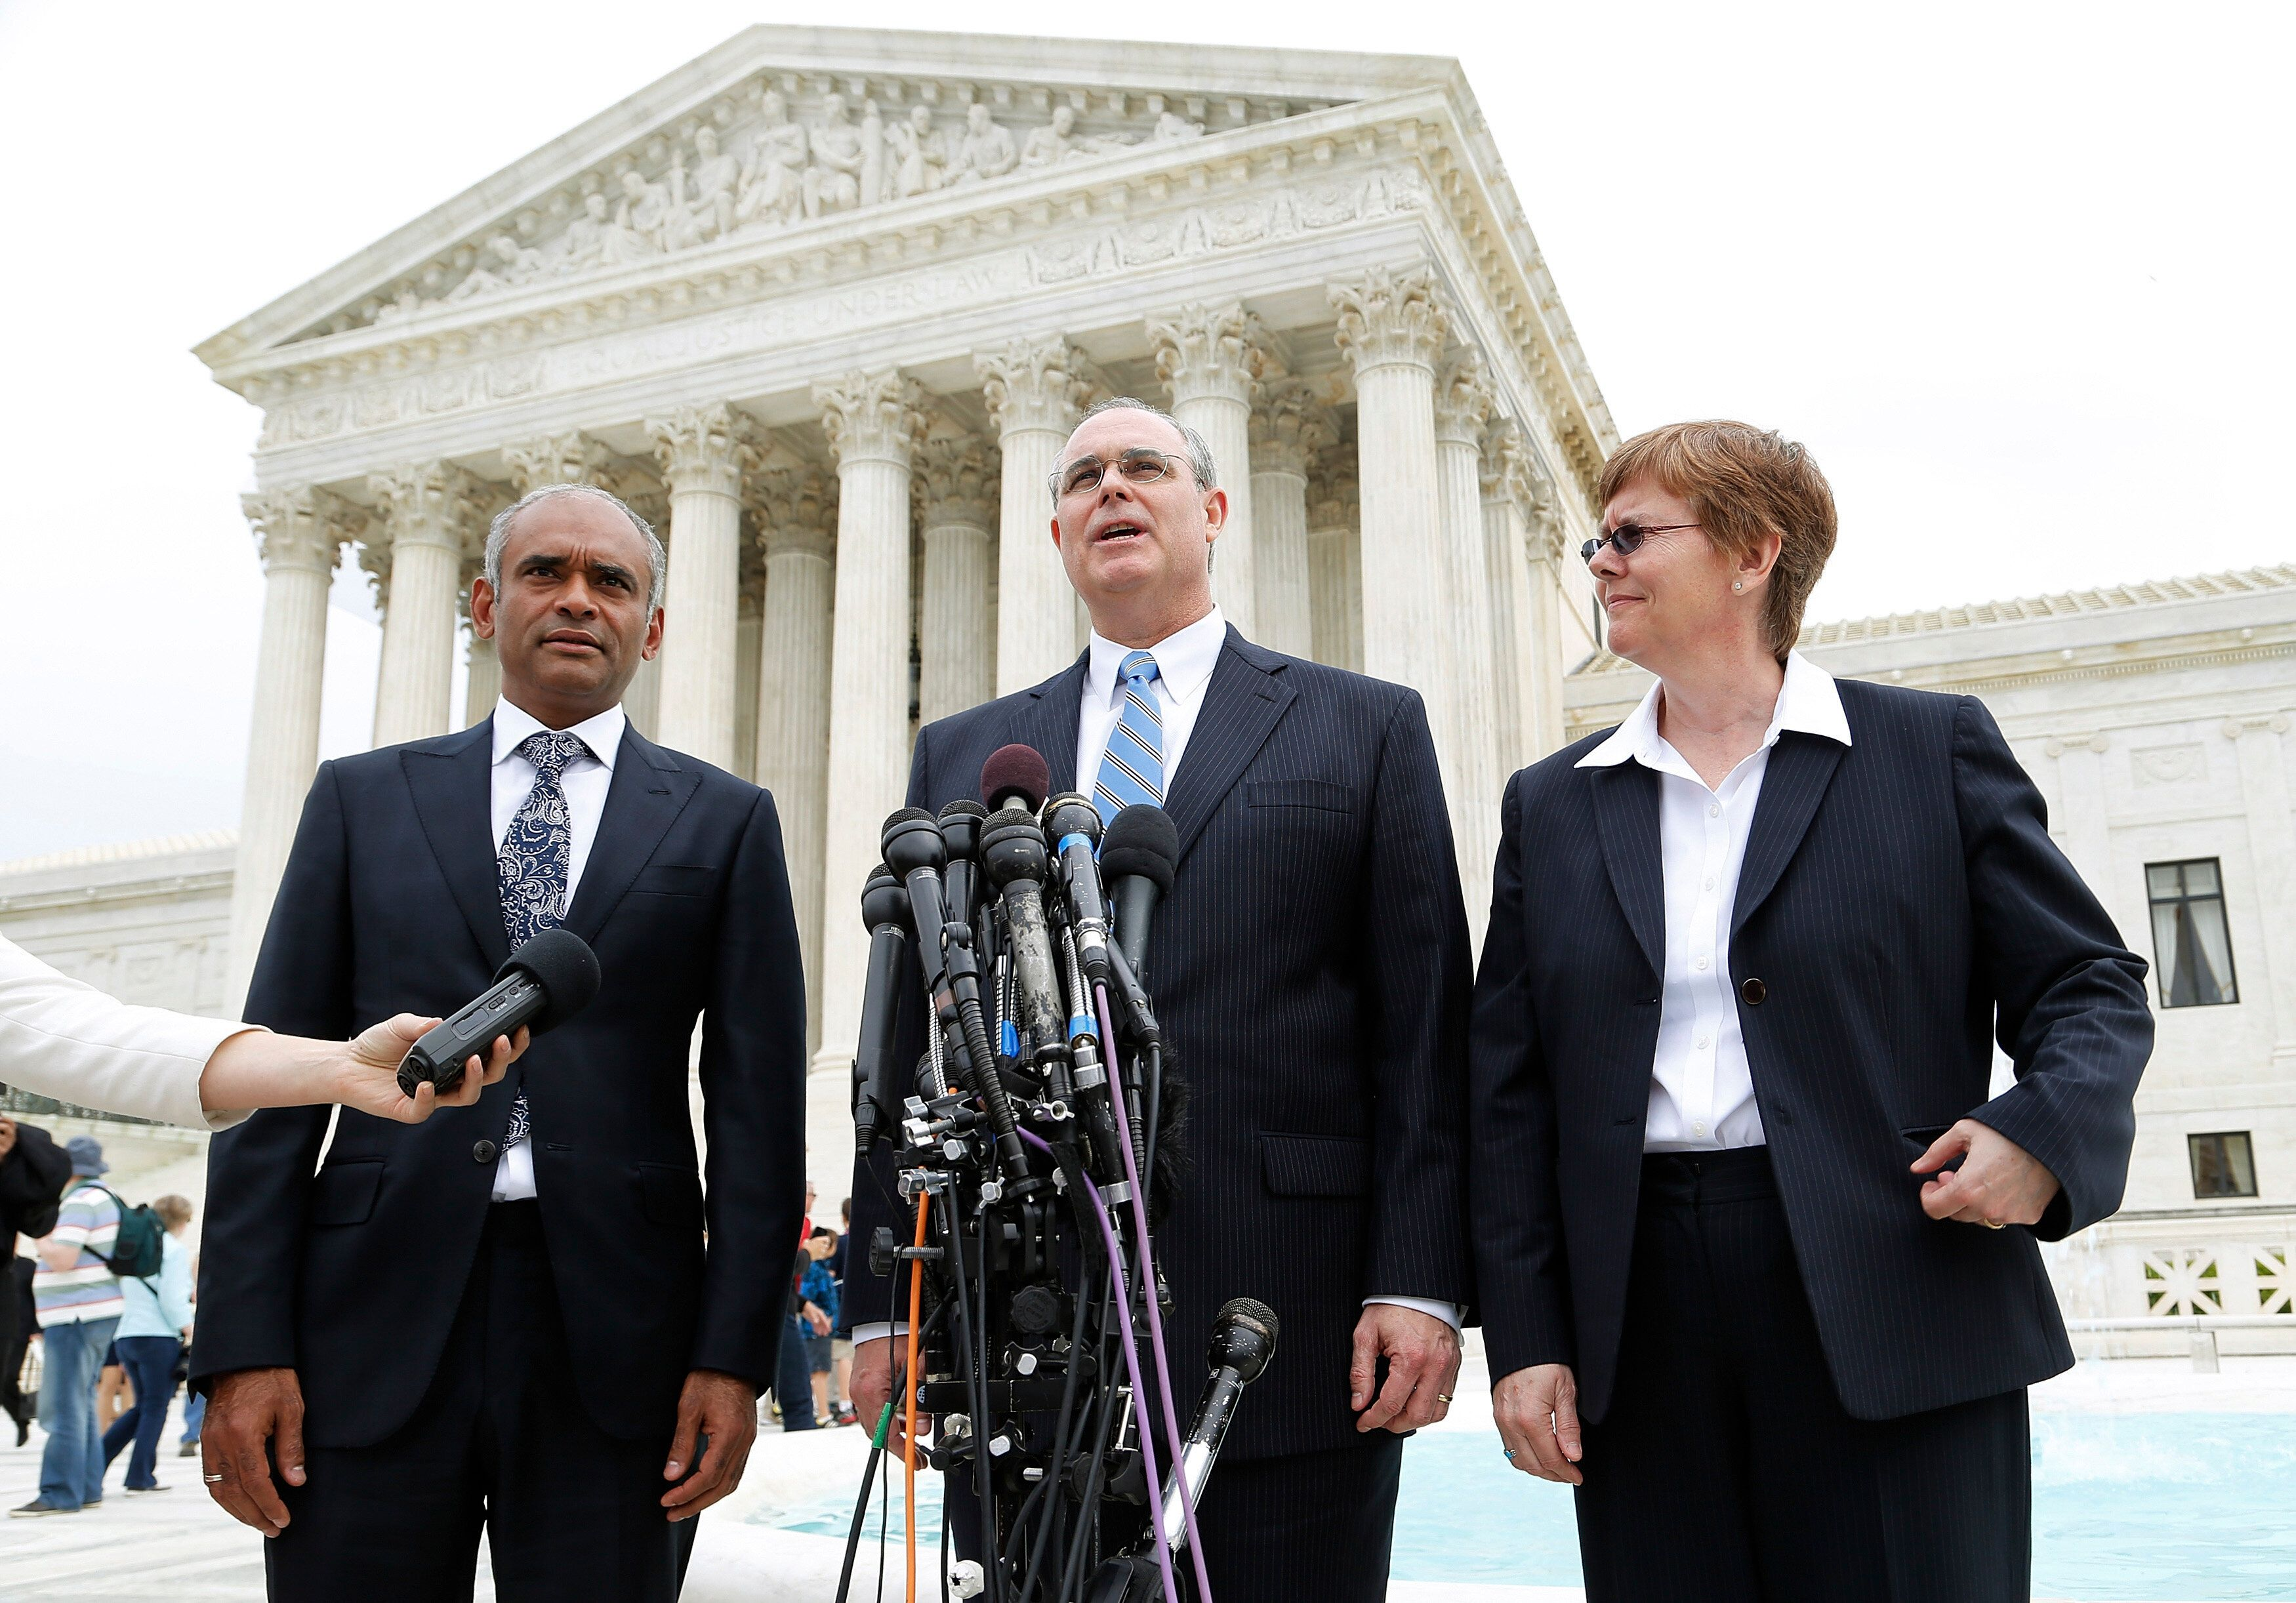 David Frederick, pictured in the center, seen in 2008 outside the Supreme Court, where he was arguing a case on behalf of the